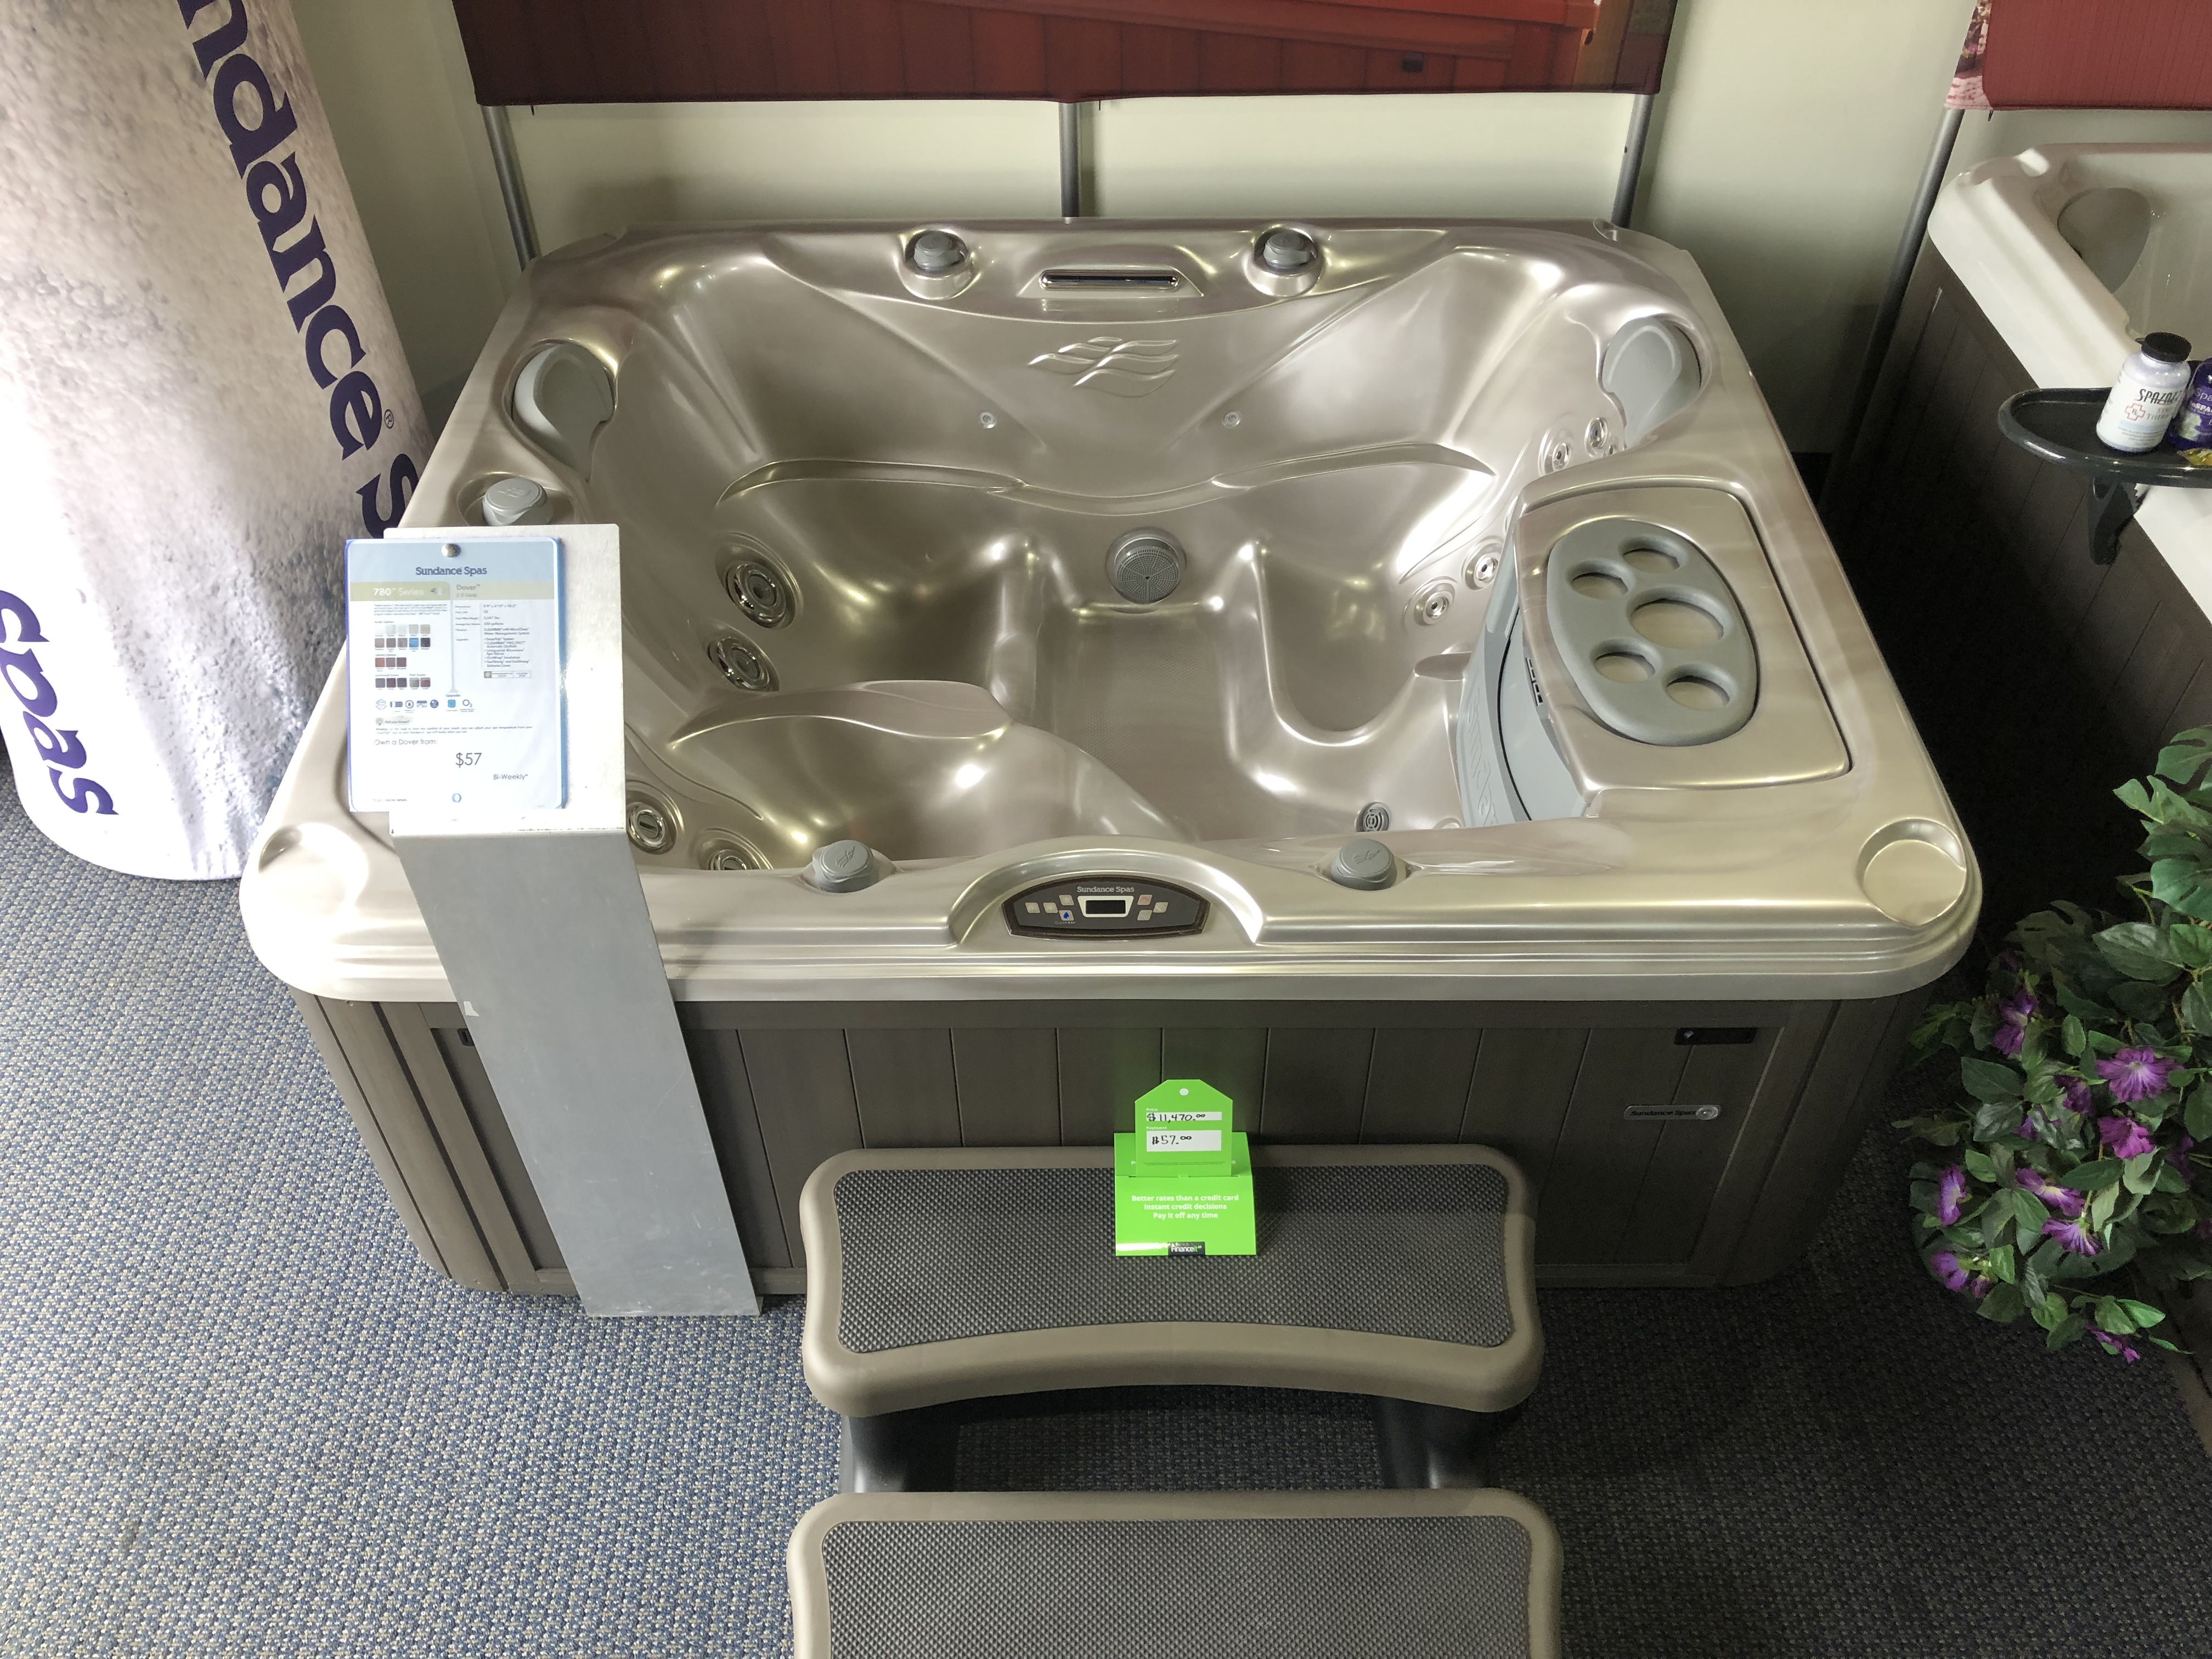 Sundance Spas 780 Series Dover 2 person plug and play hot tub hot tubs near me store Oakville Ontario